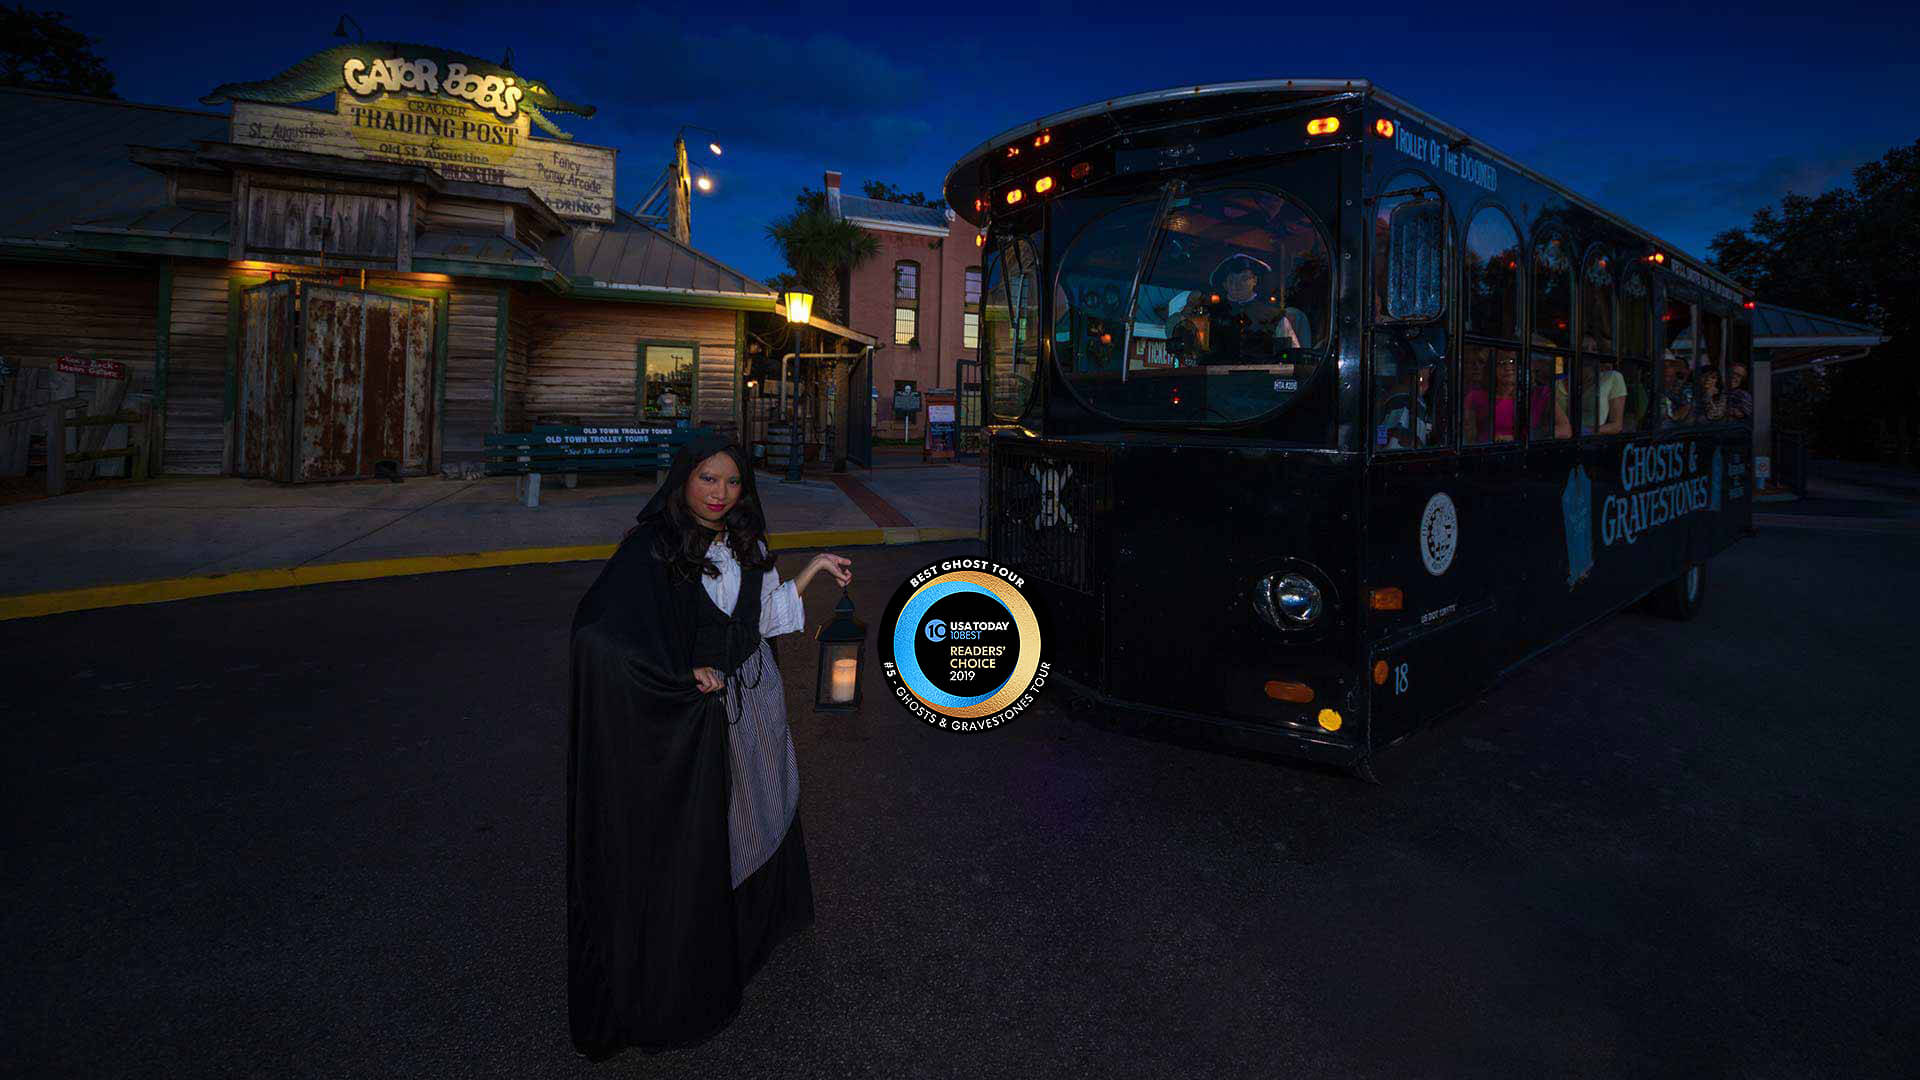 night time picture of ghost trolley in front of St. Augustine Old Jail, a female ghost host standing to the left and a Round logo that reads USA Today 10 BEST READERS' CHOICE 2019' and around logo, the words 'BEST GHOST TOUR, #5 - GHOSTS & GRAVESTONES TOUR'